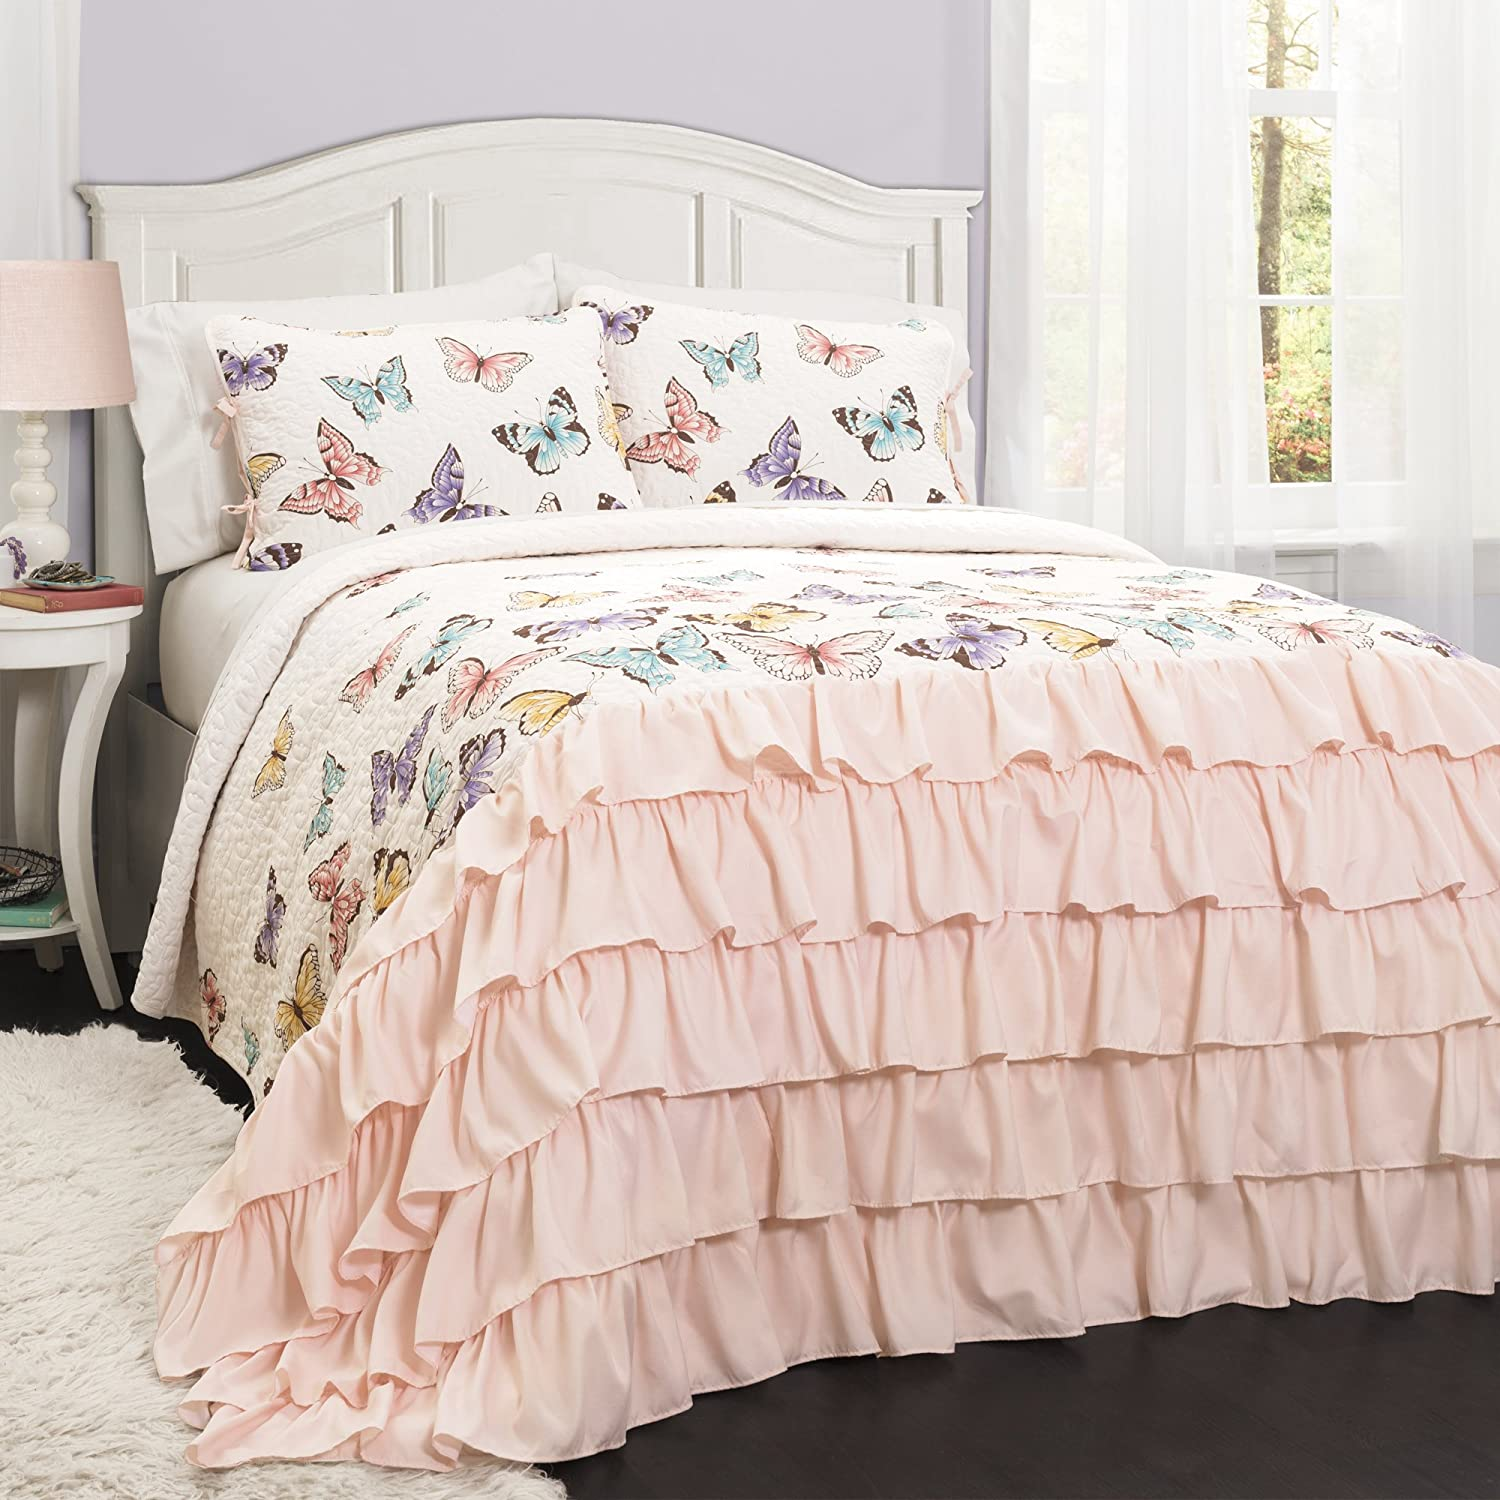 Lush Decor Lush Décor Flutter Butterfly 3 Piece Quilt Set, Full/Queen, 0